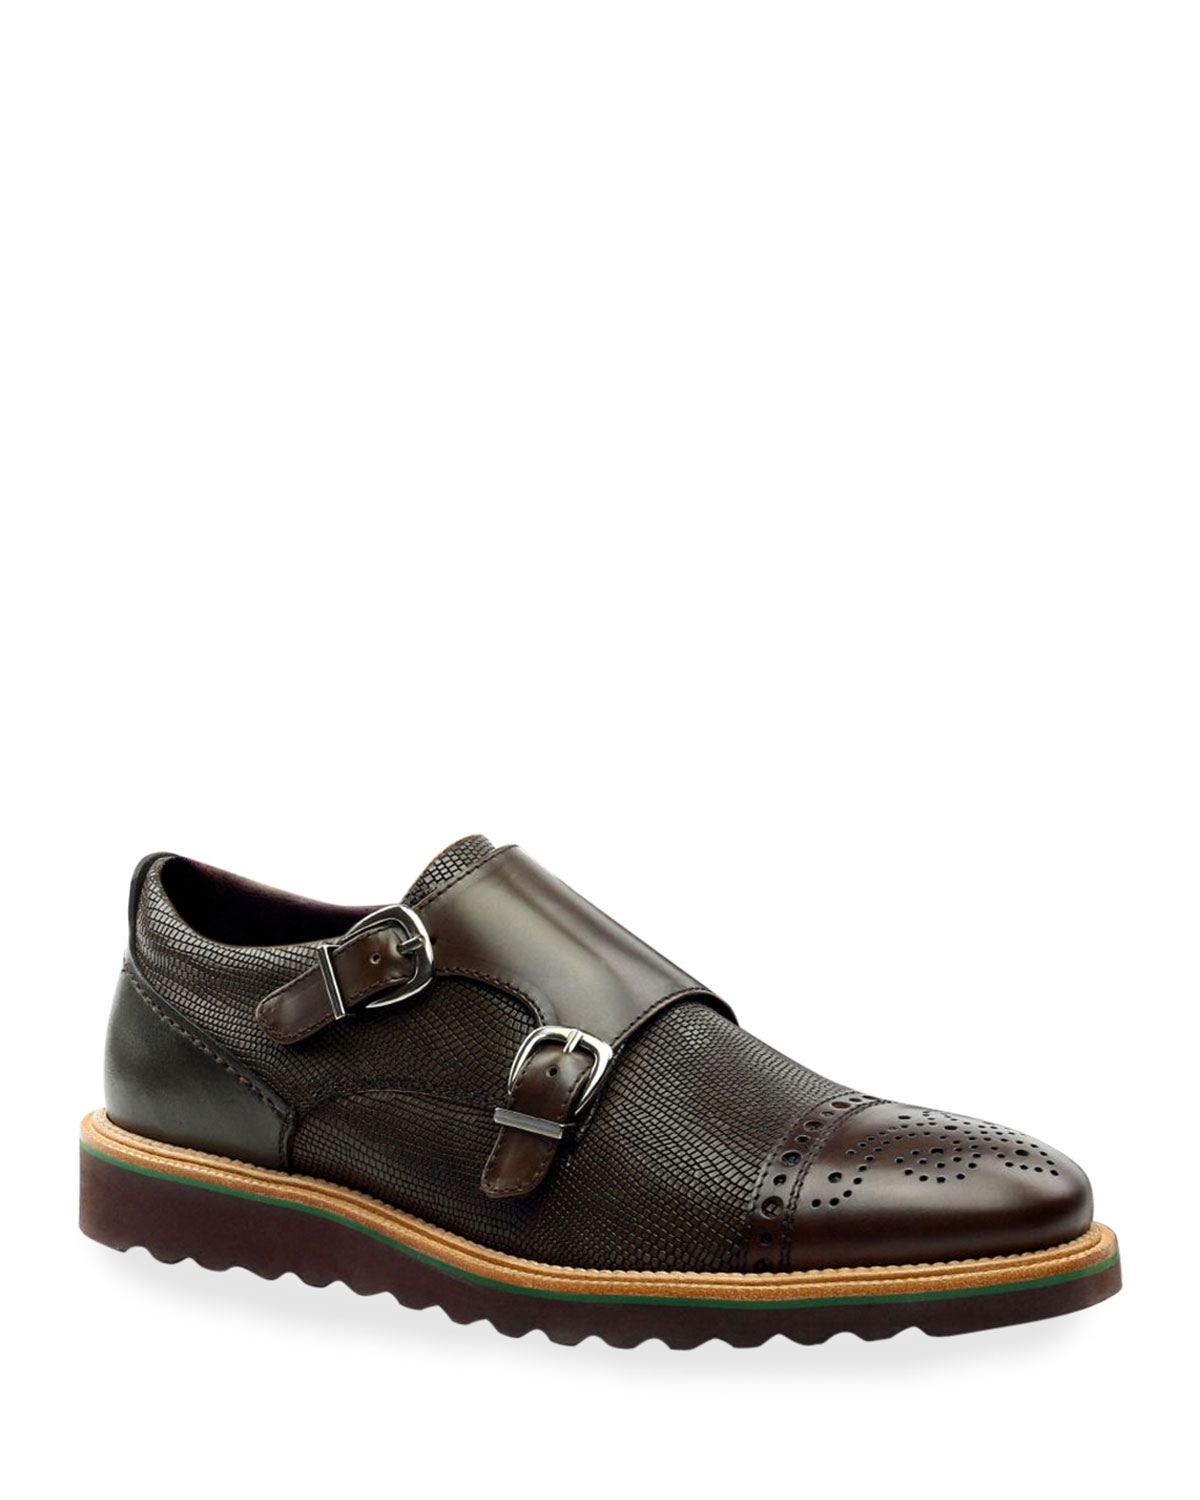 Men's Monza Double-Monk Brogue Leather Loafers